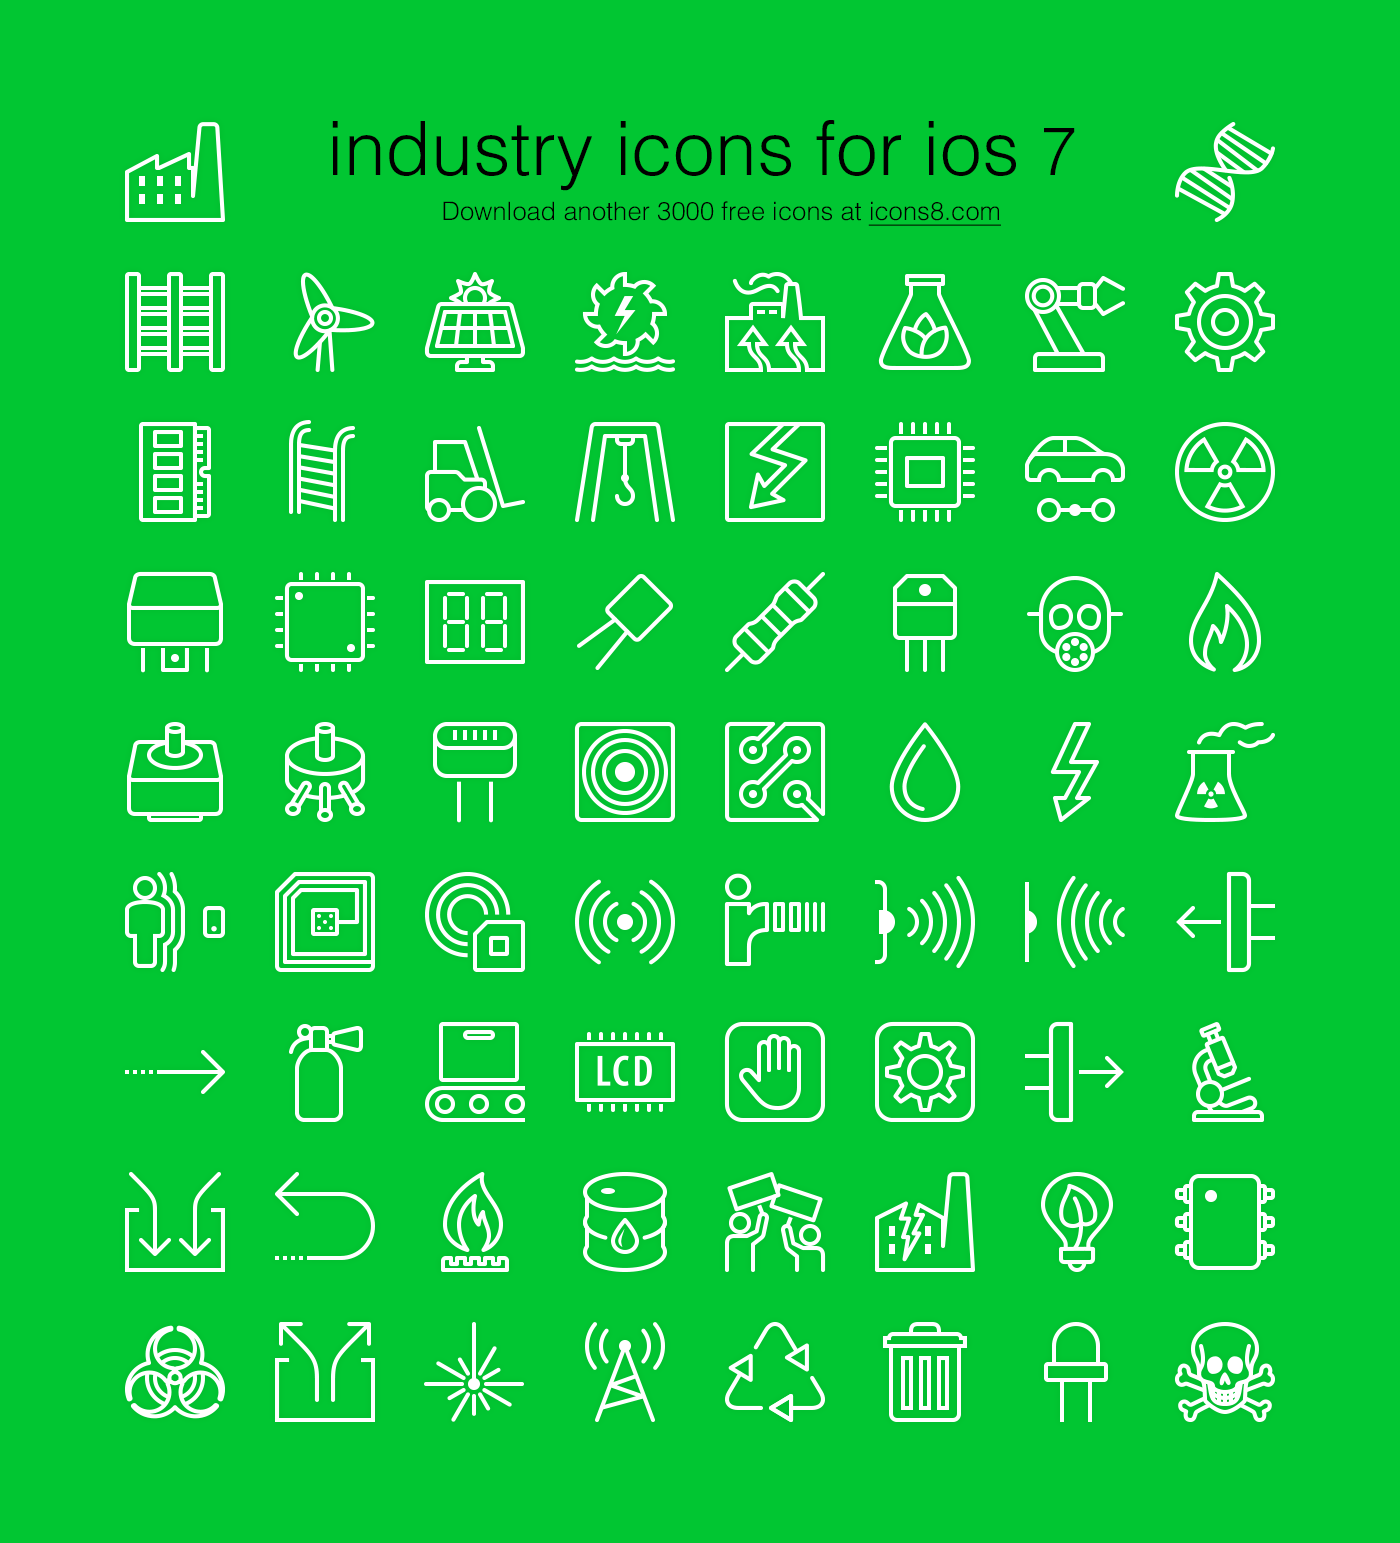 free for designers industrial icon set in an ios7 style